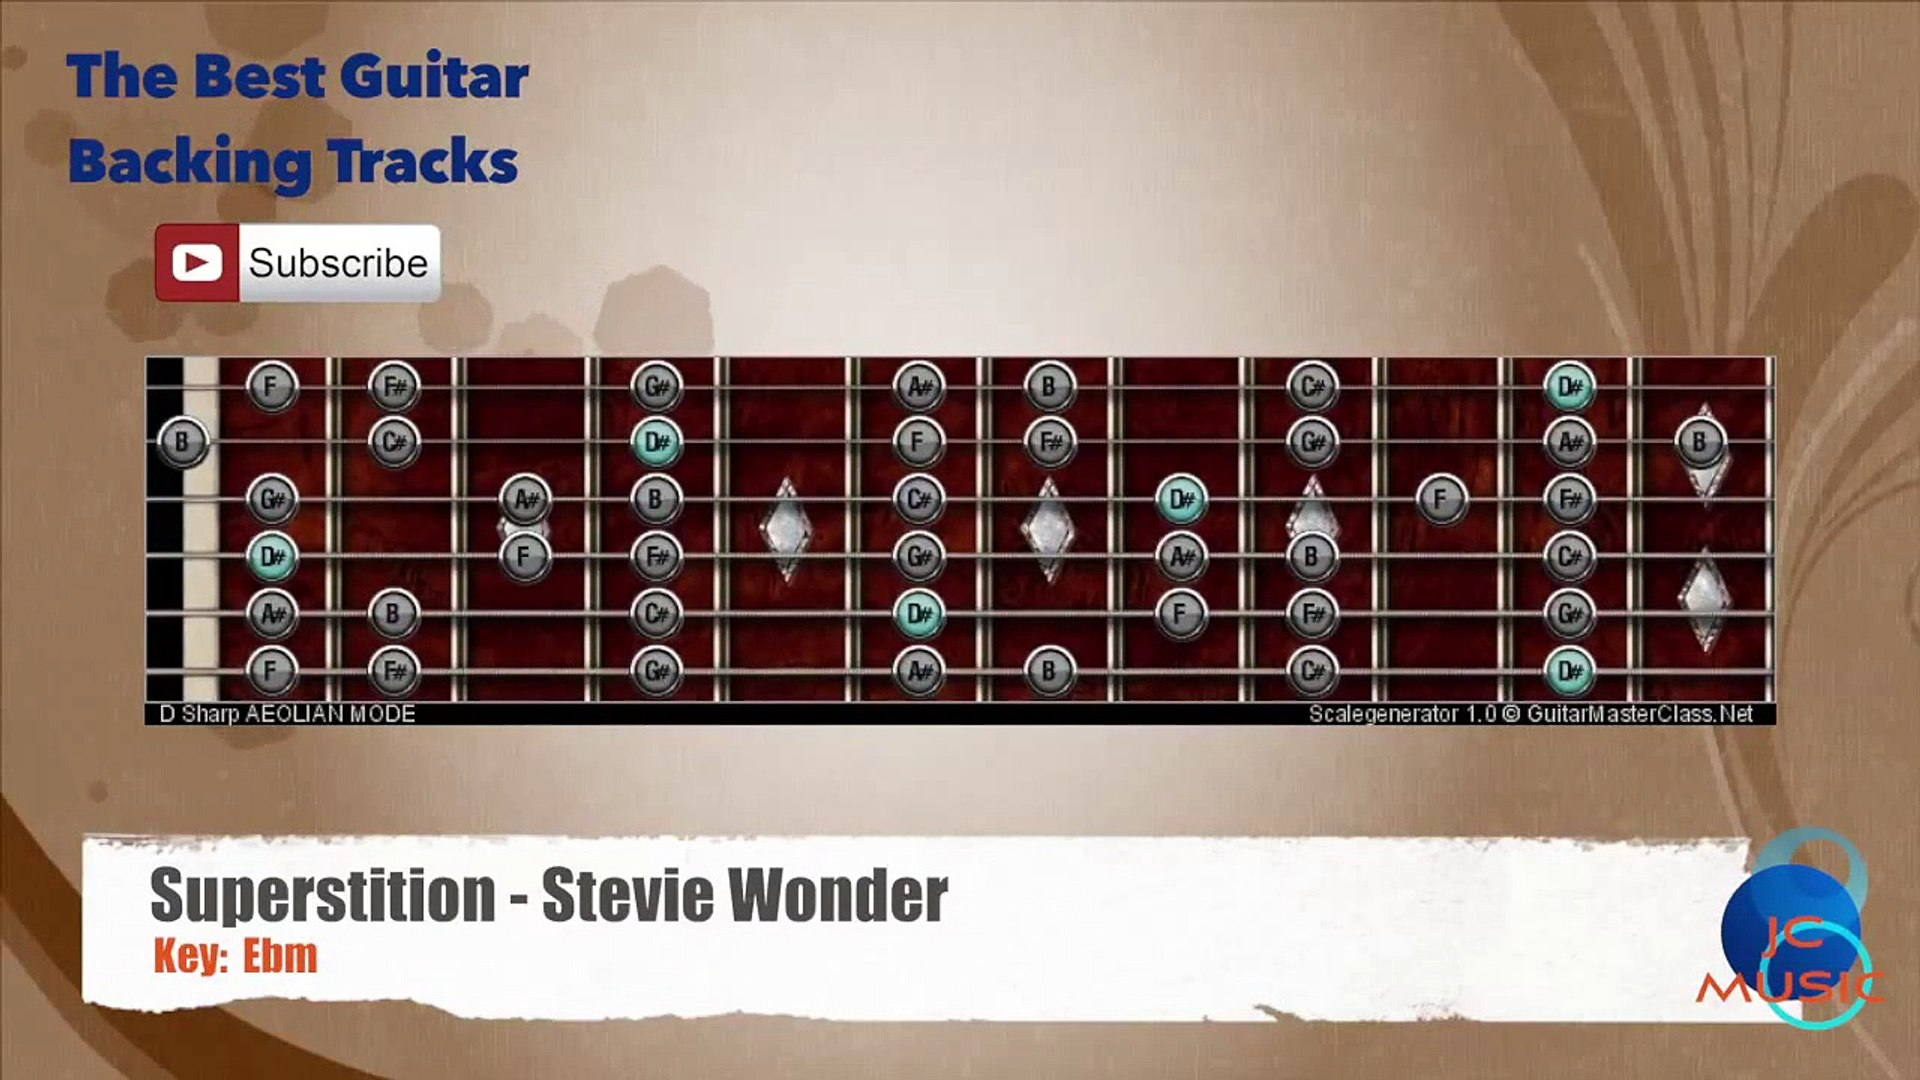 Superstition - Stevie Wonder Guitar Backing Track with scale chart